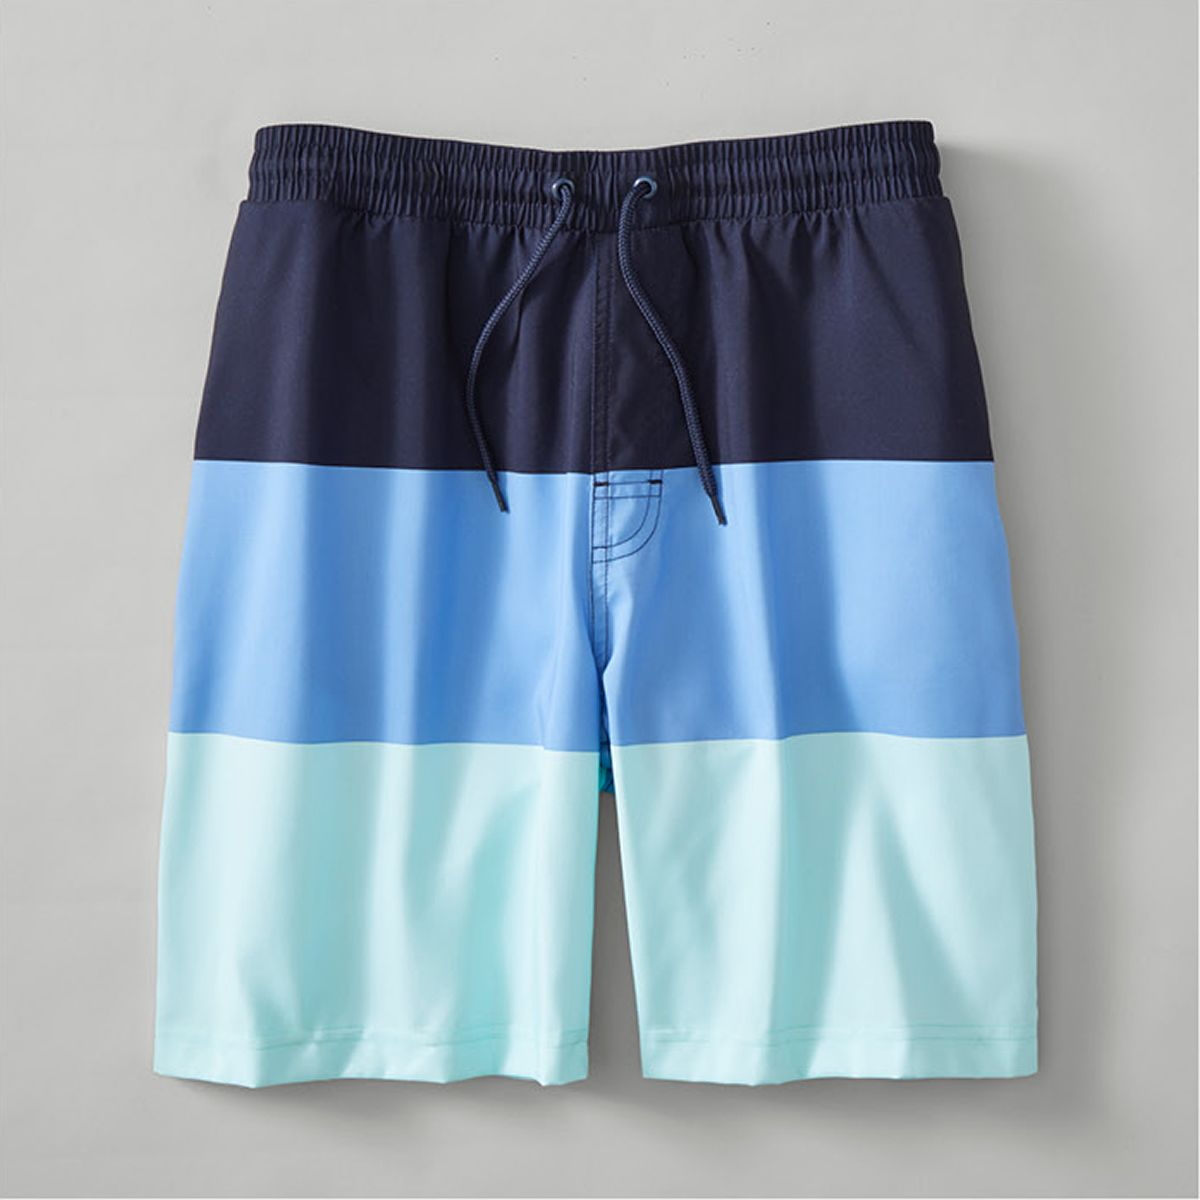 cb1834965a Swim Trunk Mens Swimwear & Men's Swim Trunks - Macy's